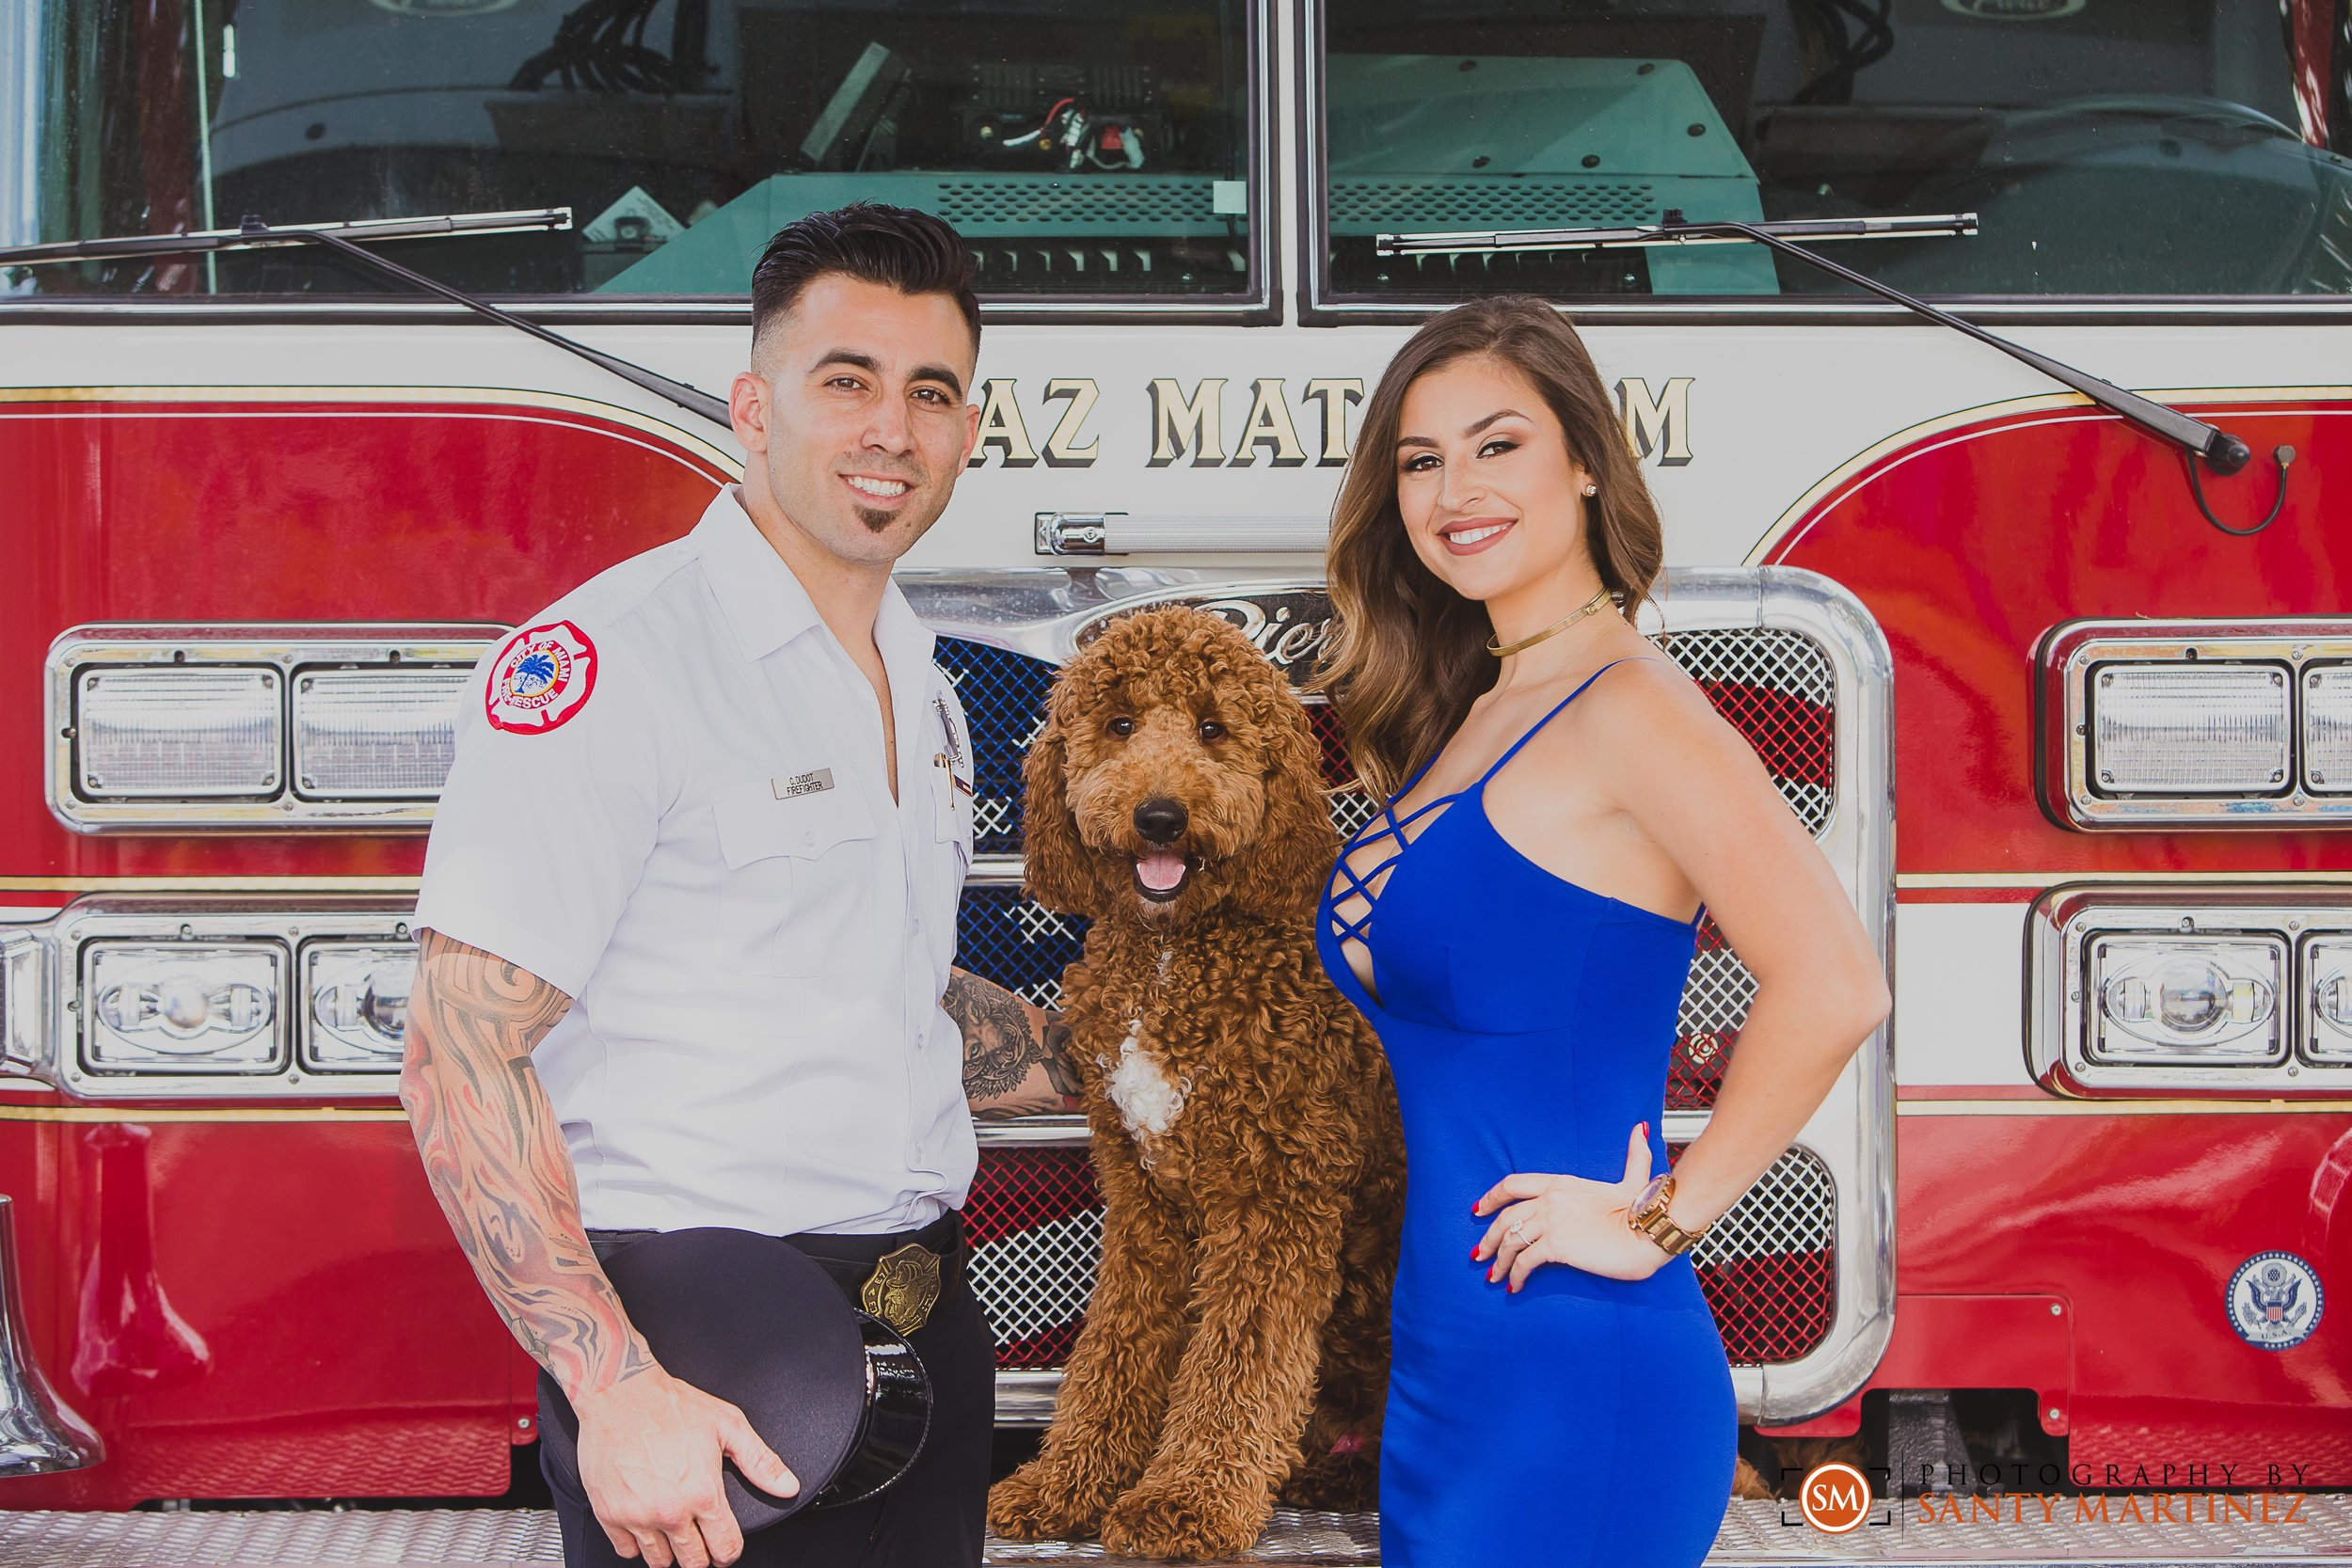 Miami Firefighter Engagement Session - Photography by Santy Martinez-4.jpg